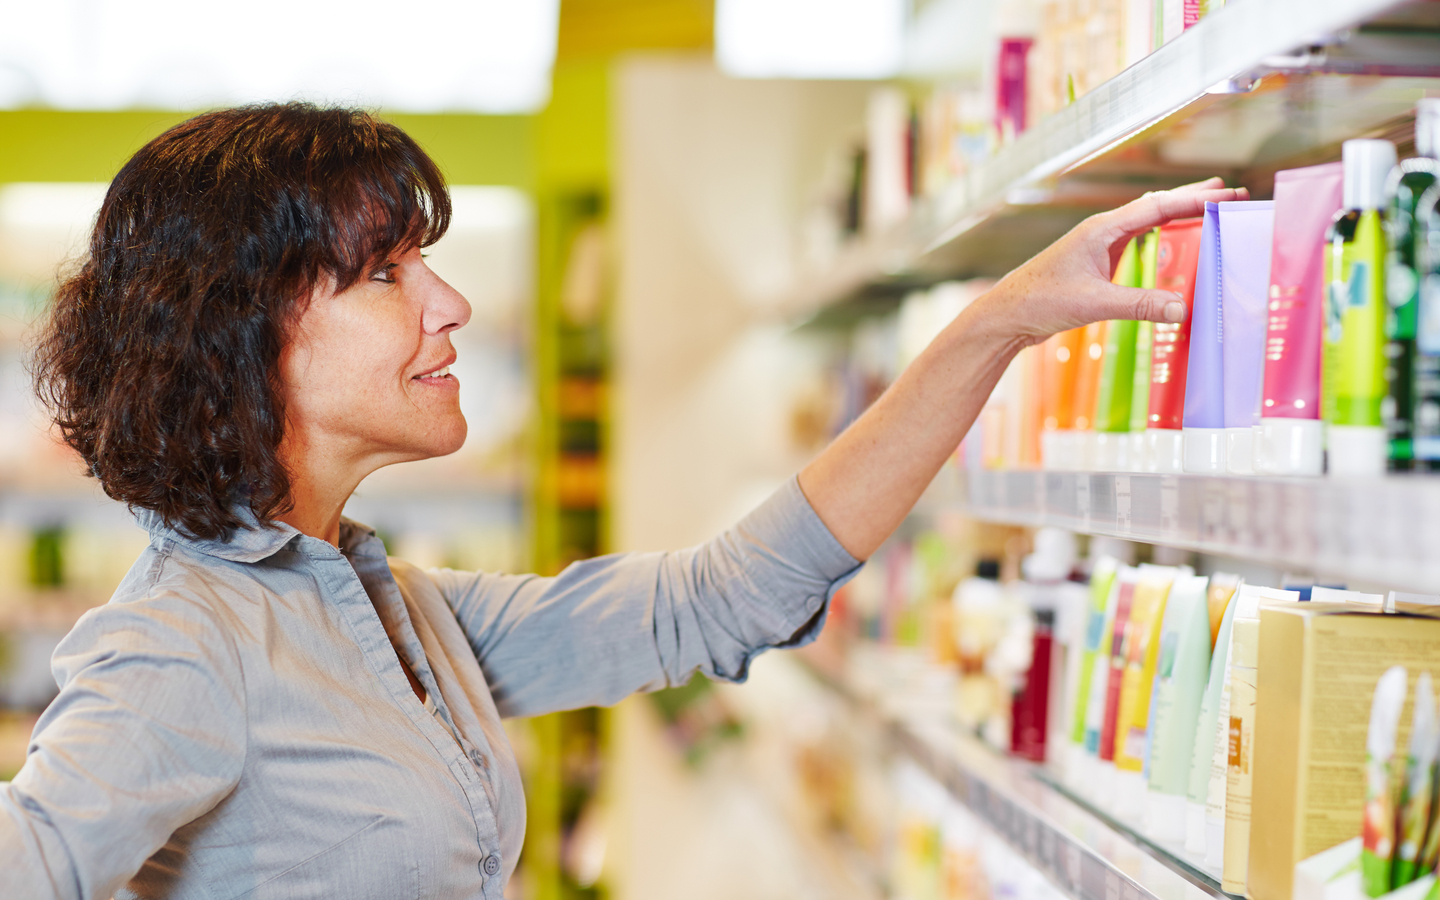 Cosmetics and skin care products in supermarket